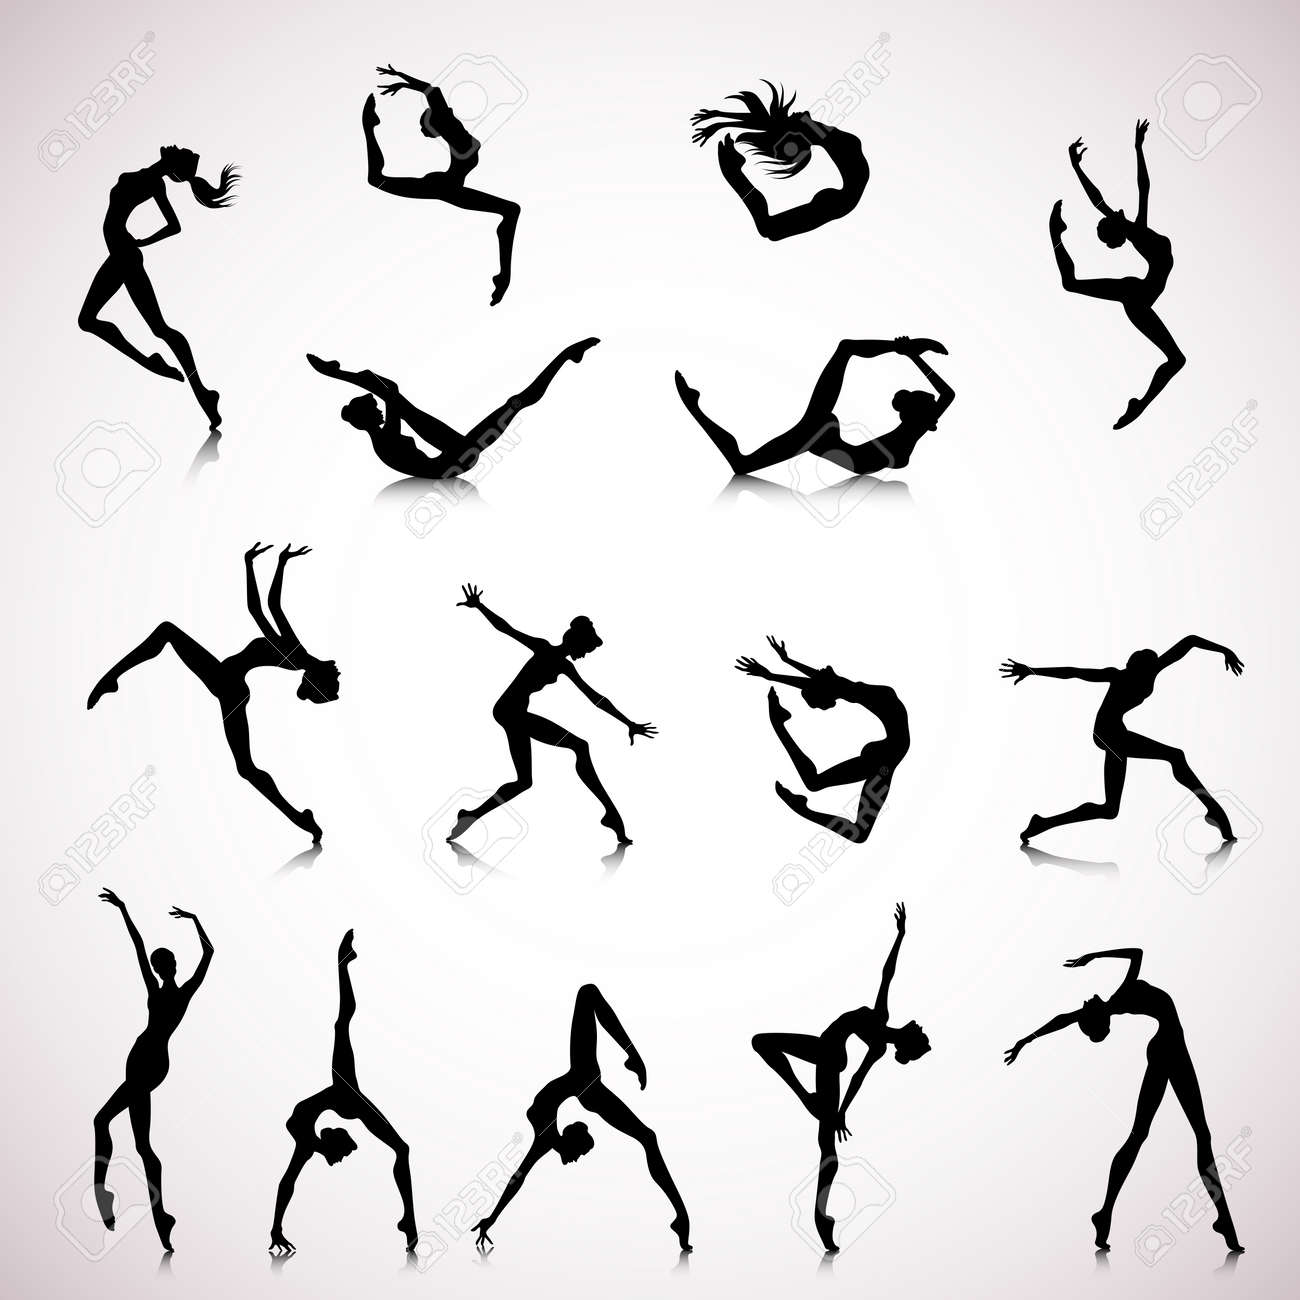 Set Of Female Silhouettes Dancing In Modern Style Royalty Free ...